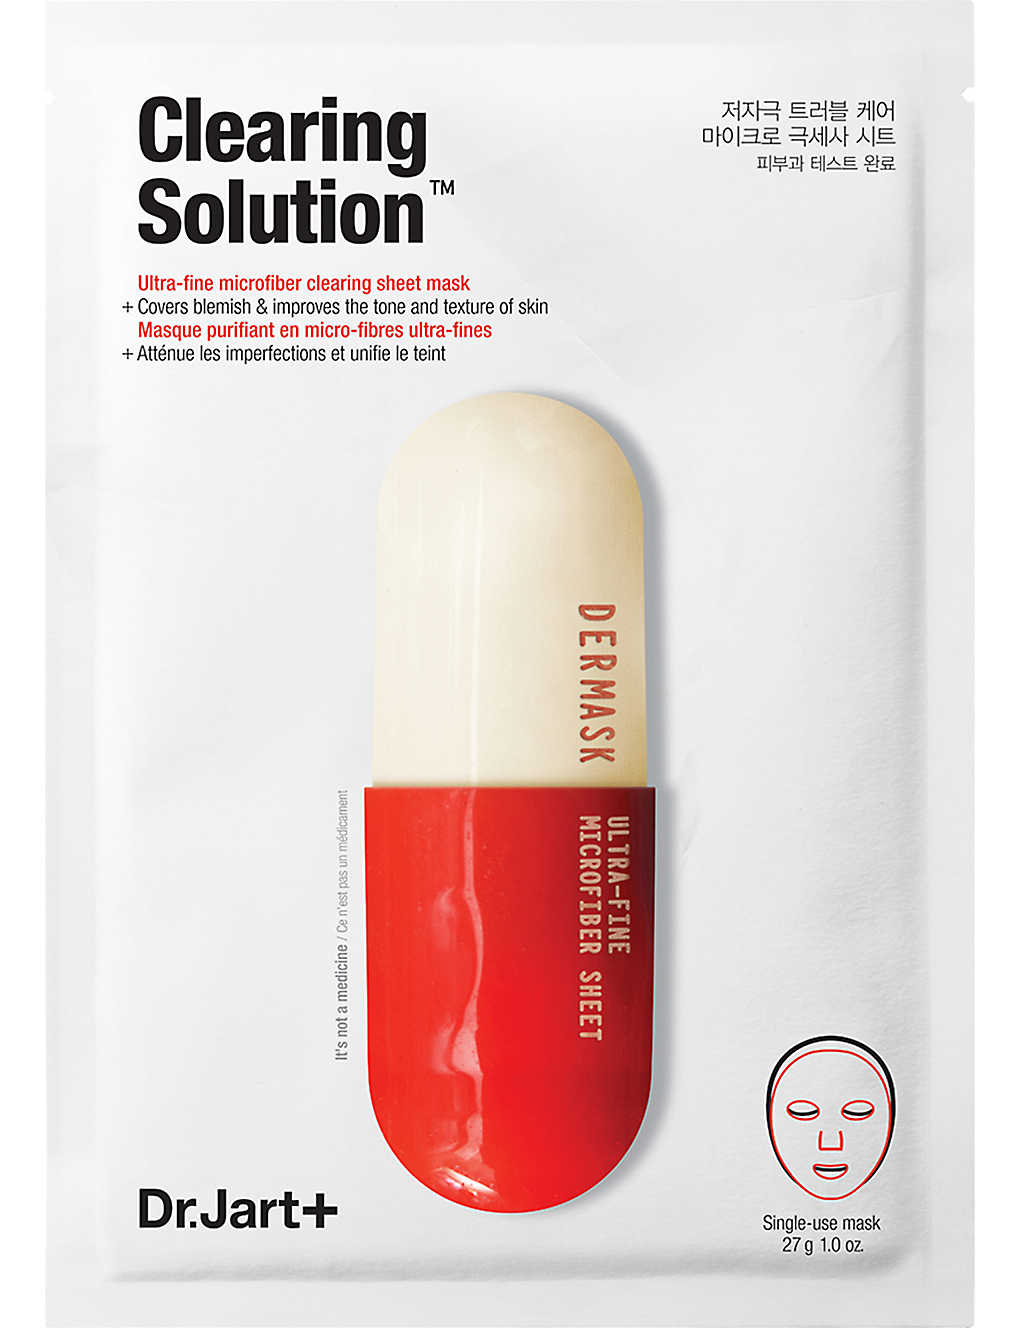 DR JART+: Dermask Clearing Solution Ultra-Fine Microfiber Sheet Mask